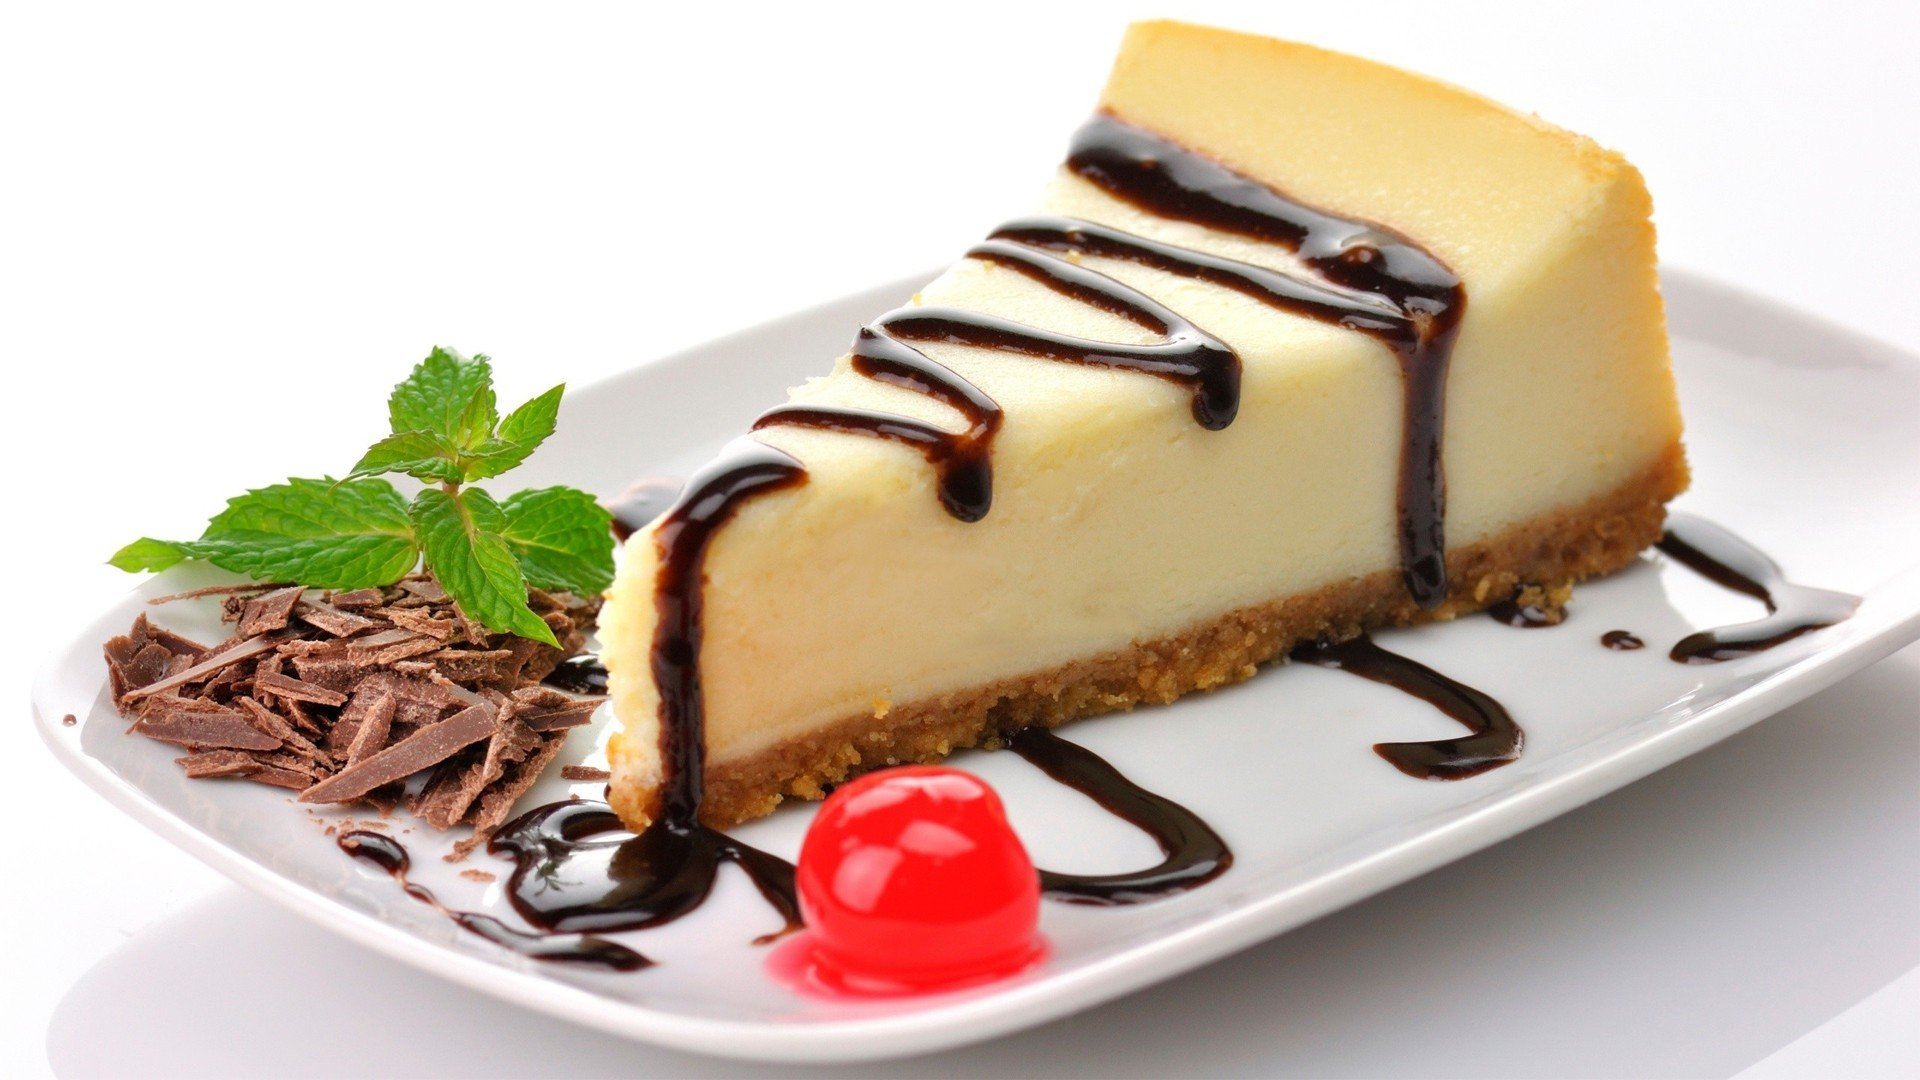 Cheesecake Chocolate Cherries Dessert Cake Hd Wallpapers Desktop And Mobile Images Photos